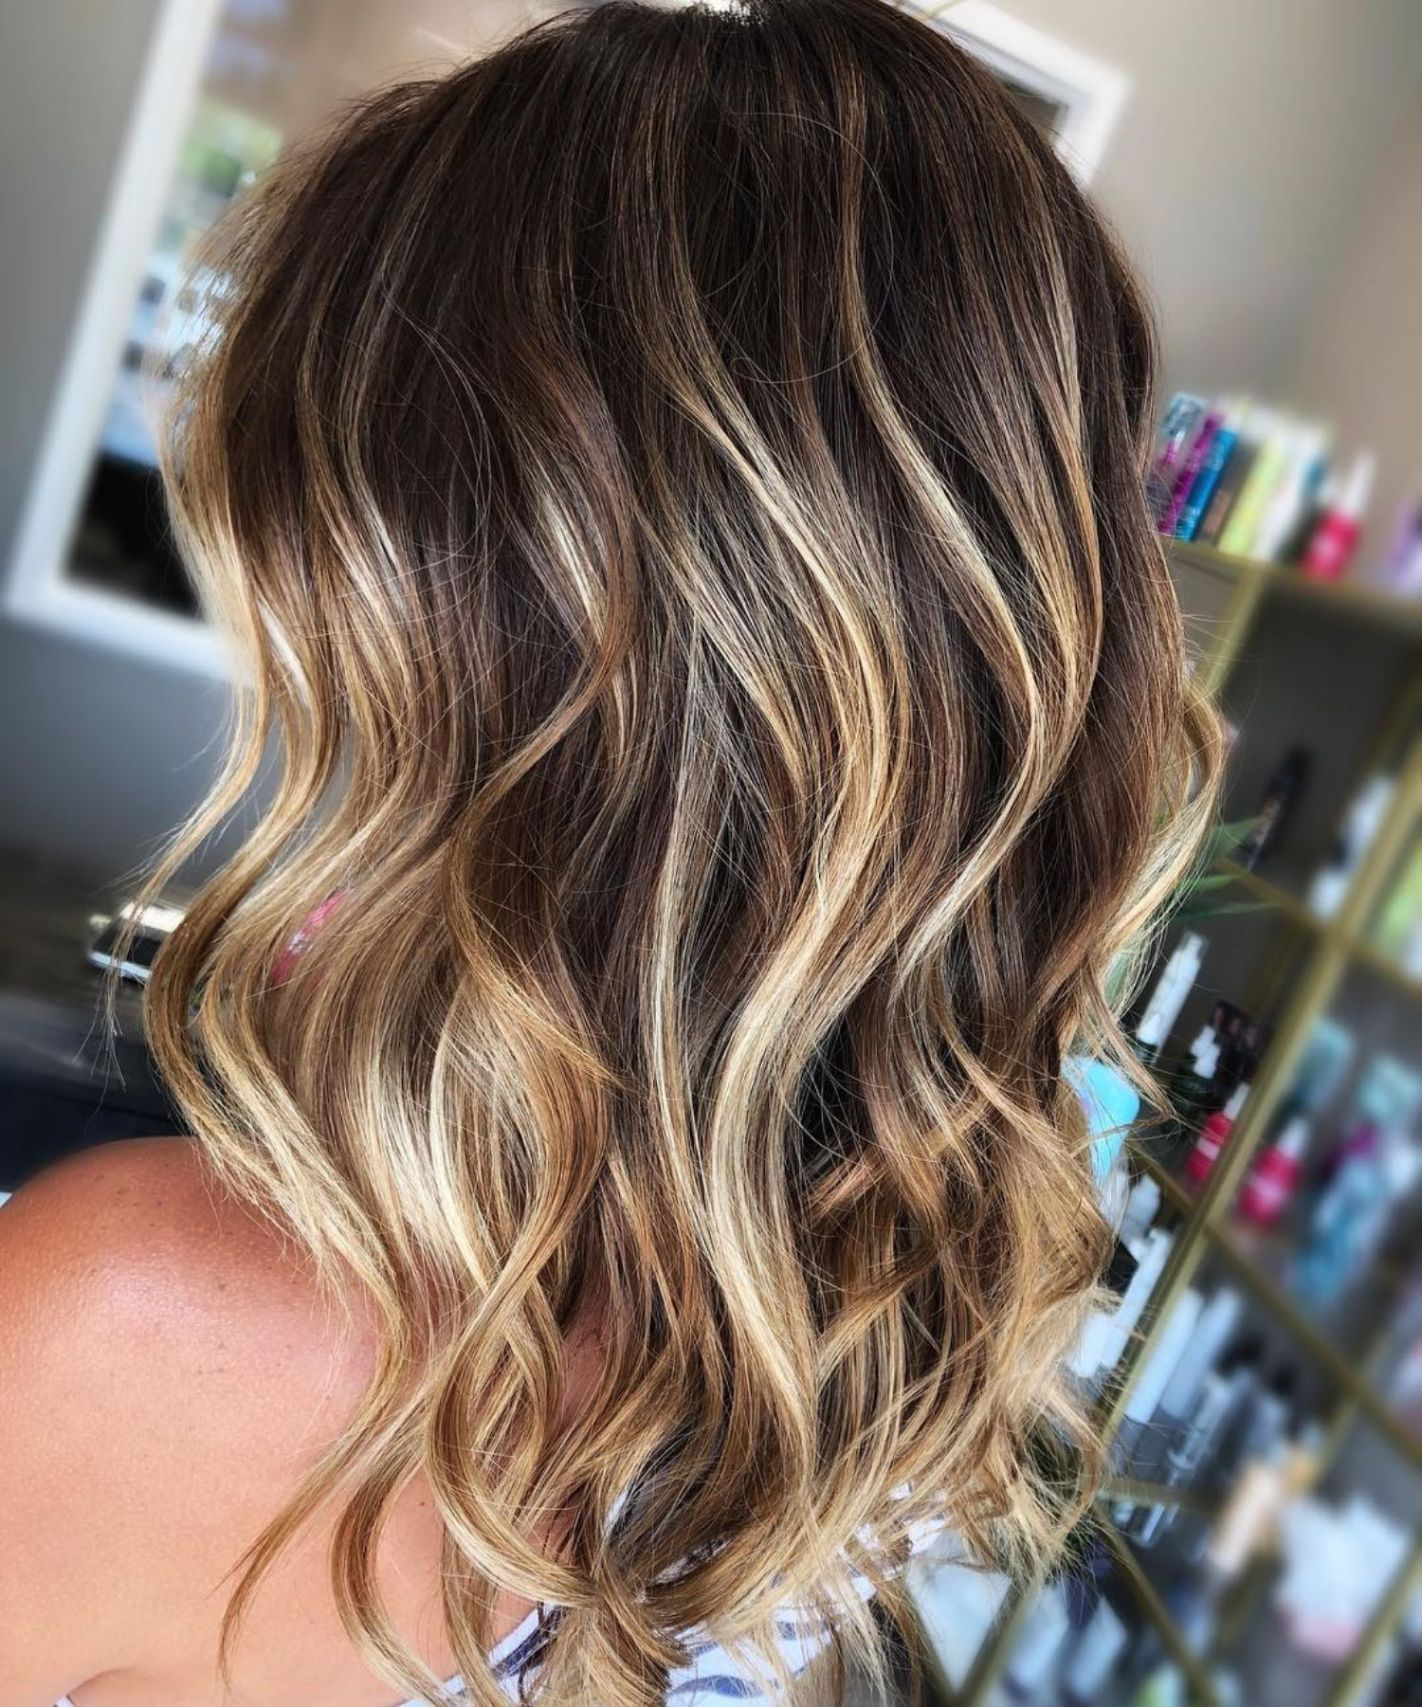 60 Chocolate Brown Hair Color Ideas For Brunettes In 2020 Dark Blonde Hair Color Brown Blonde Hair Dark Hair With Highlights